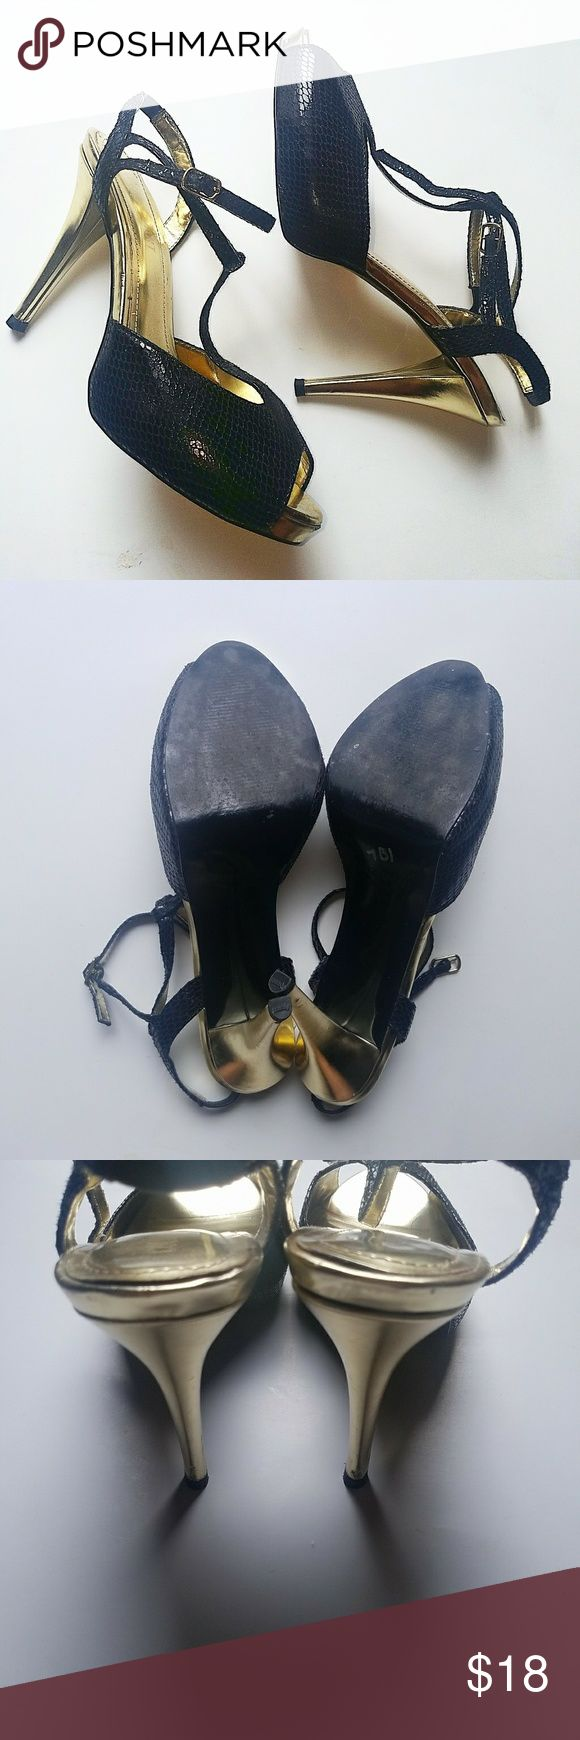 Colin Stuart Black Snakeprint Gold heeled pumps size 10M(medium width) front scuff,and heels have little marks and minor wear on bottoms as shown, plenty of life left! Colin Stuart Shoes Platforms